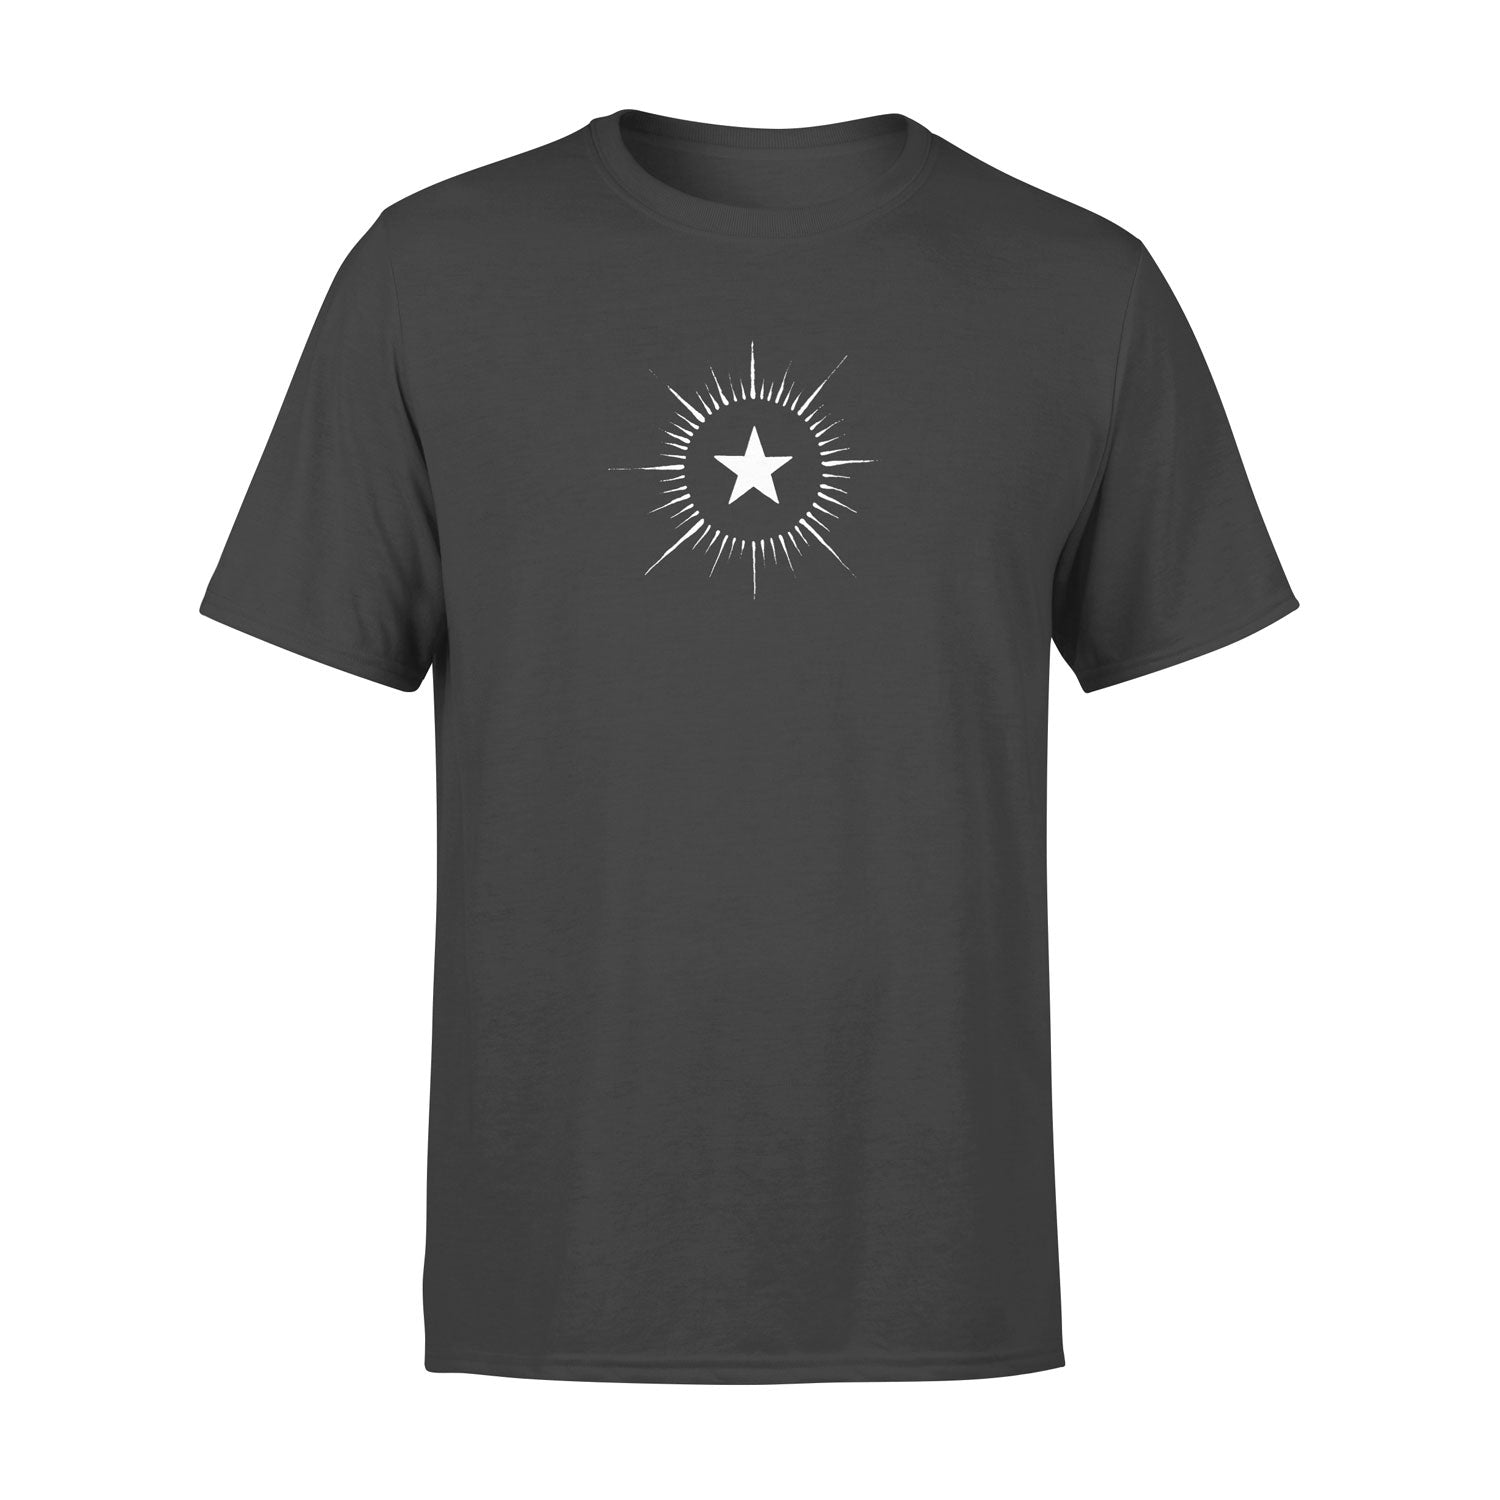 grey men's t shirt with vintage star design